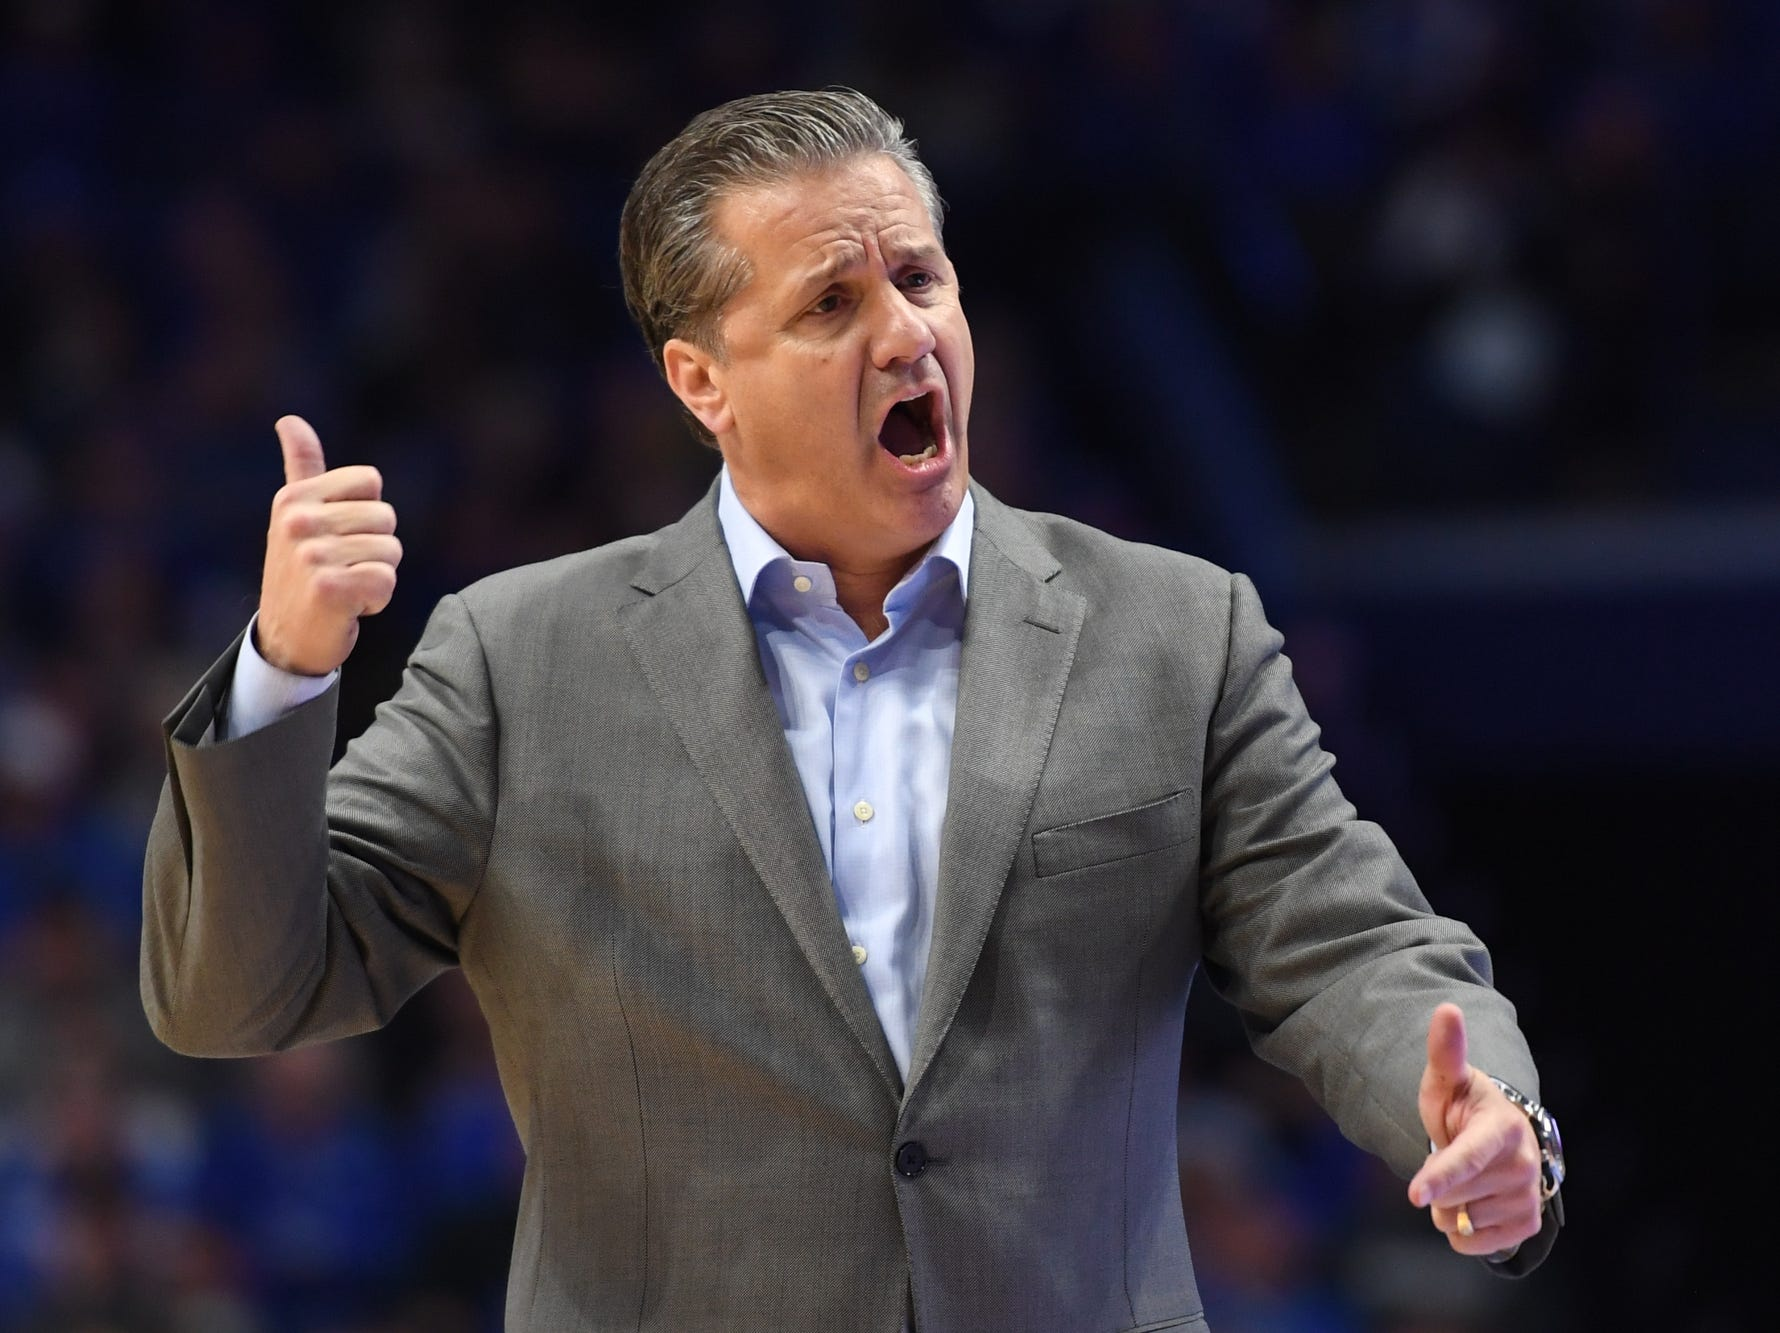 UK head coach John Calipari during the University of Kentucky mens basketball game against Southern Illinois at Rupp Arena in Lexington, Kentucky on Friday, November 9, 2018.